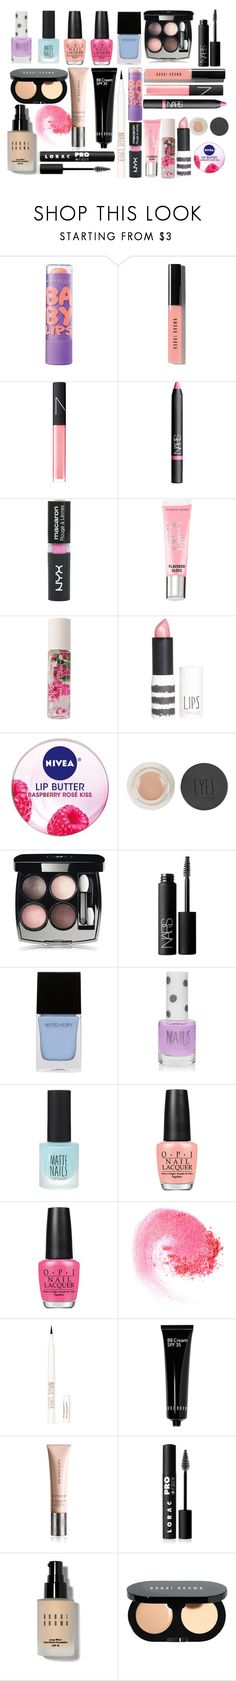 """""""Alison Dilaurentis inspired makeup"""" by xzozebo ❤ liked on Polyvore featuring Maybelline, Bobbi Brown Cosmetics, NARS Cosmetics, Topshop, Beauty Rush, Forever 21, Nivea, Chanel, Witchery and OPI"""